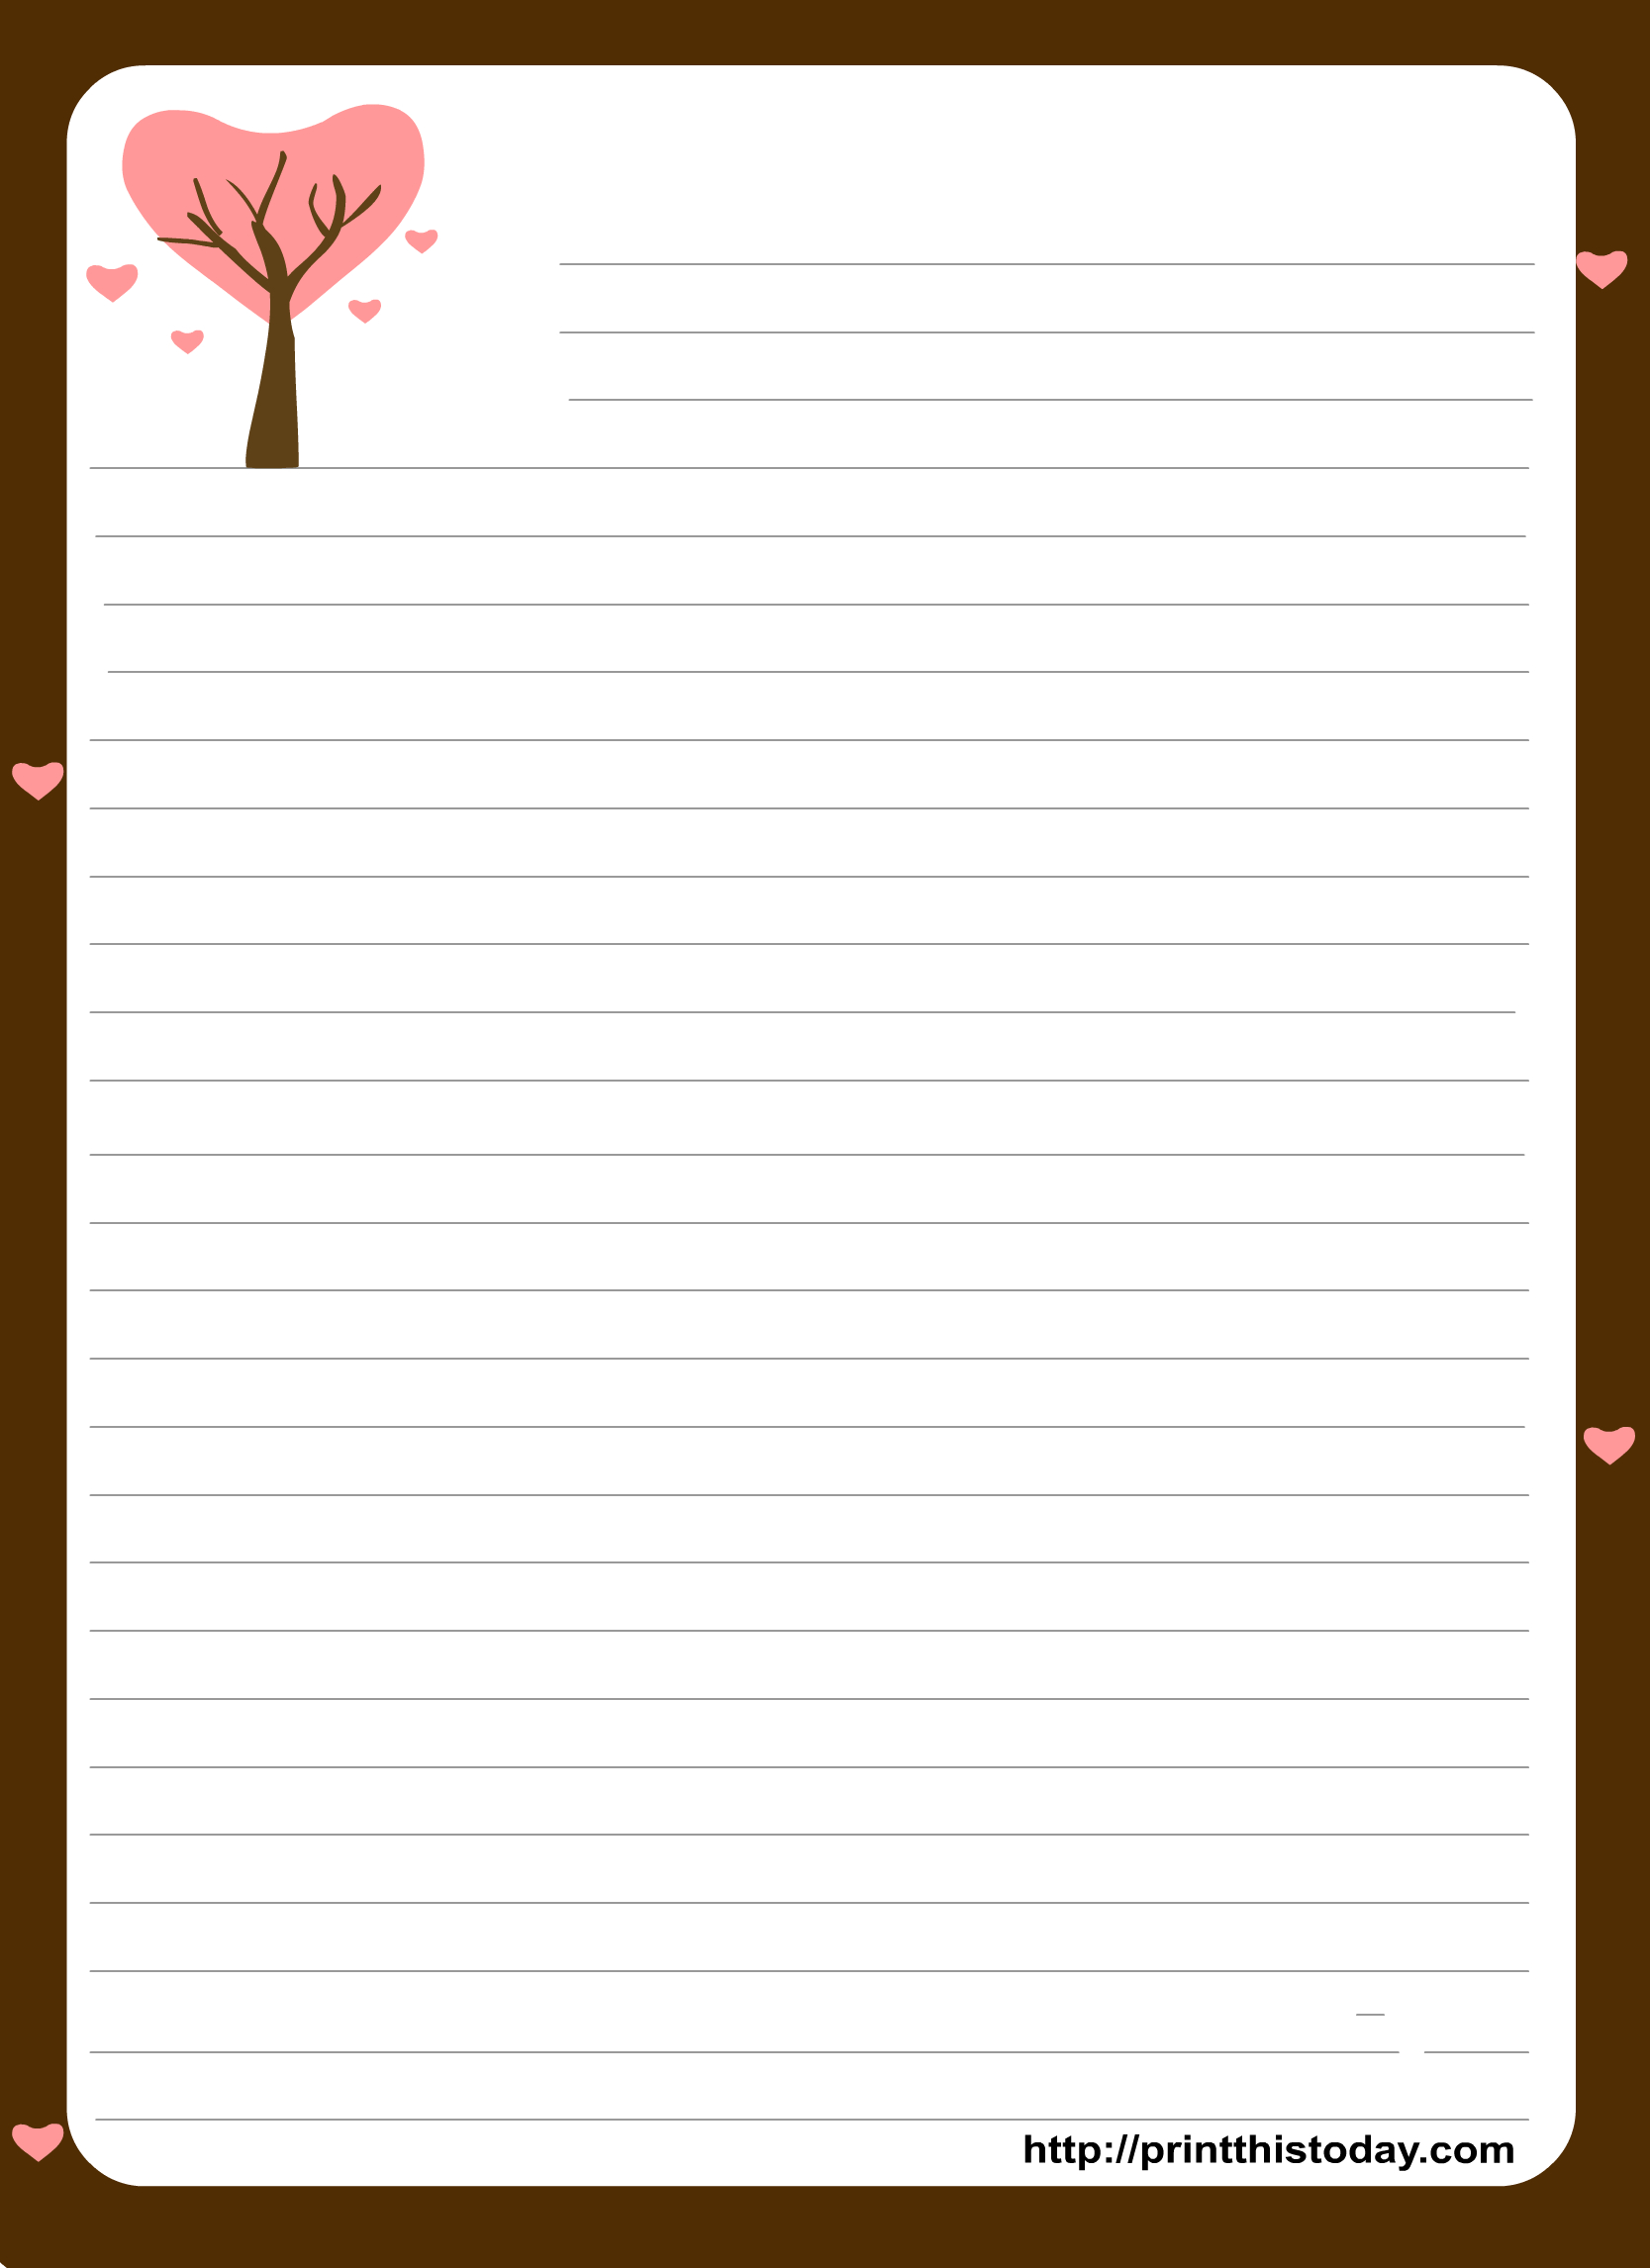 Free Printable Stationery Paper | Free Printable Stationary With - Free Printable Writing Paper For Adults